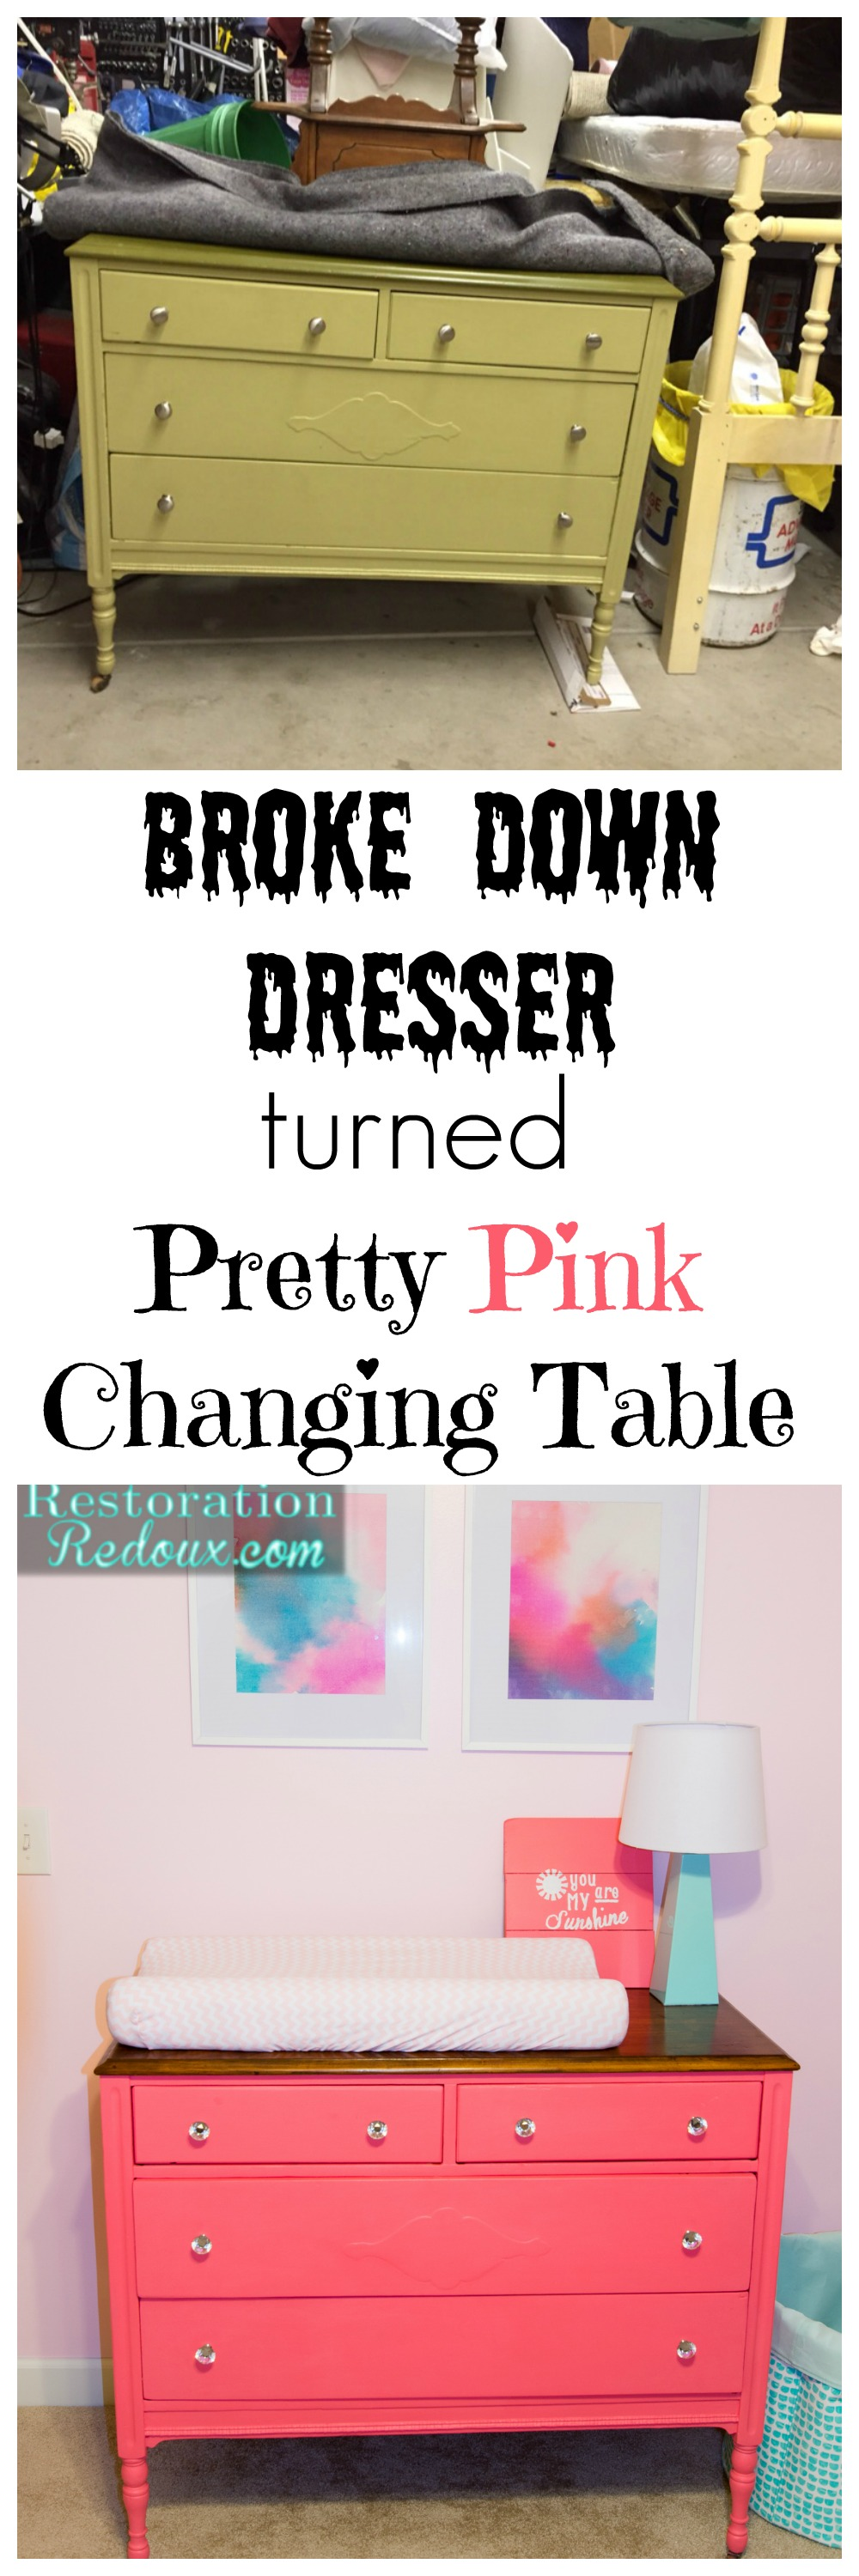 dresser-turned-changingtable